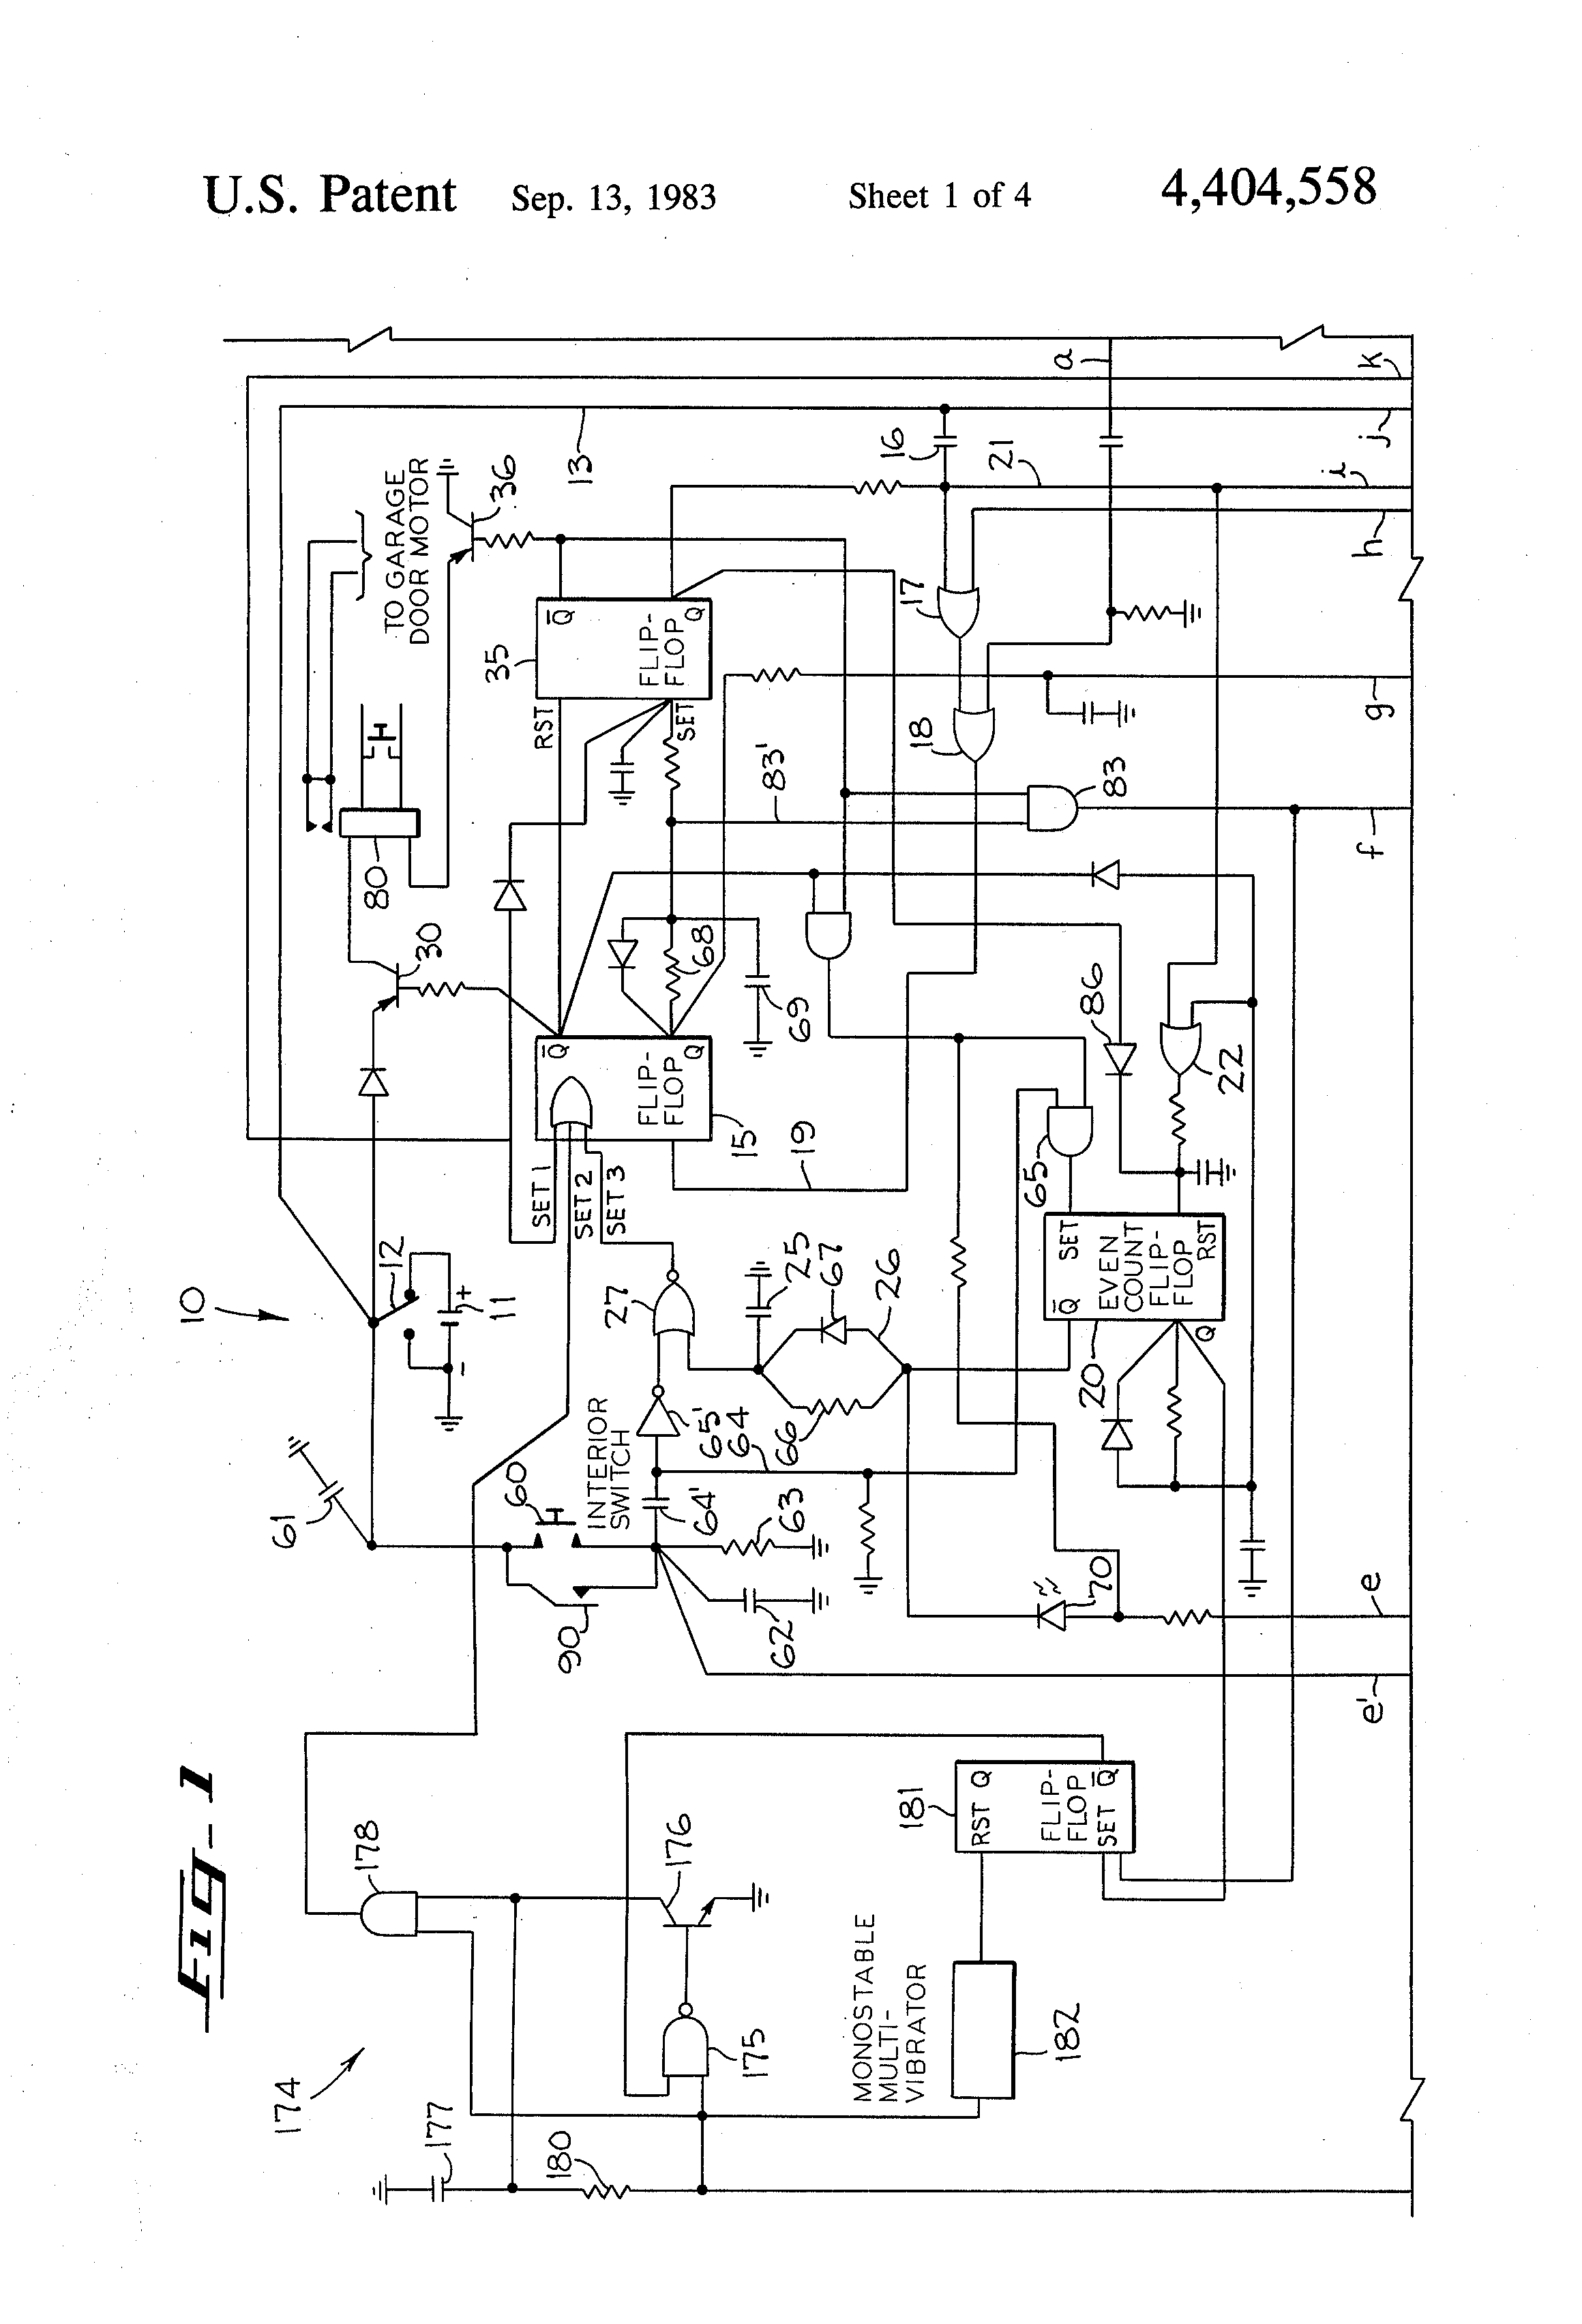 Stanley Gate Opener Wiring Diagram 34 Wiring Diagram